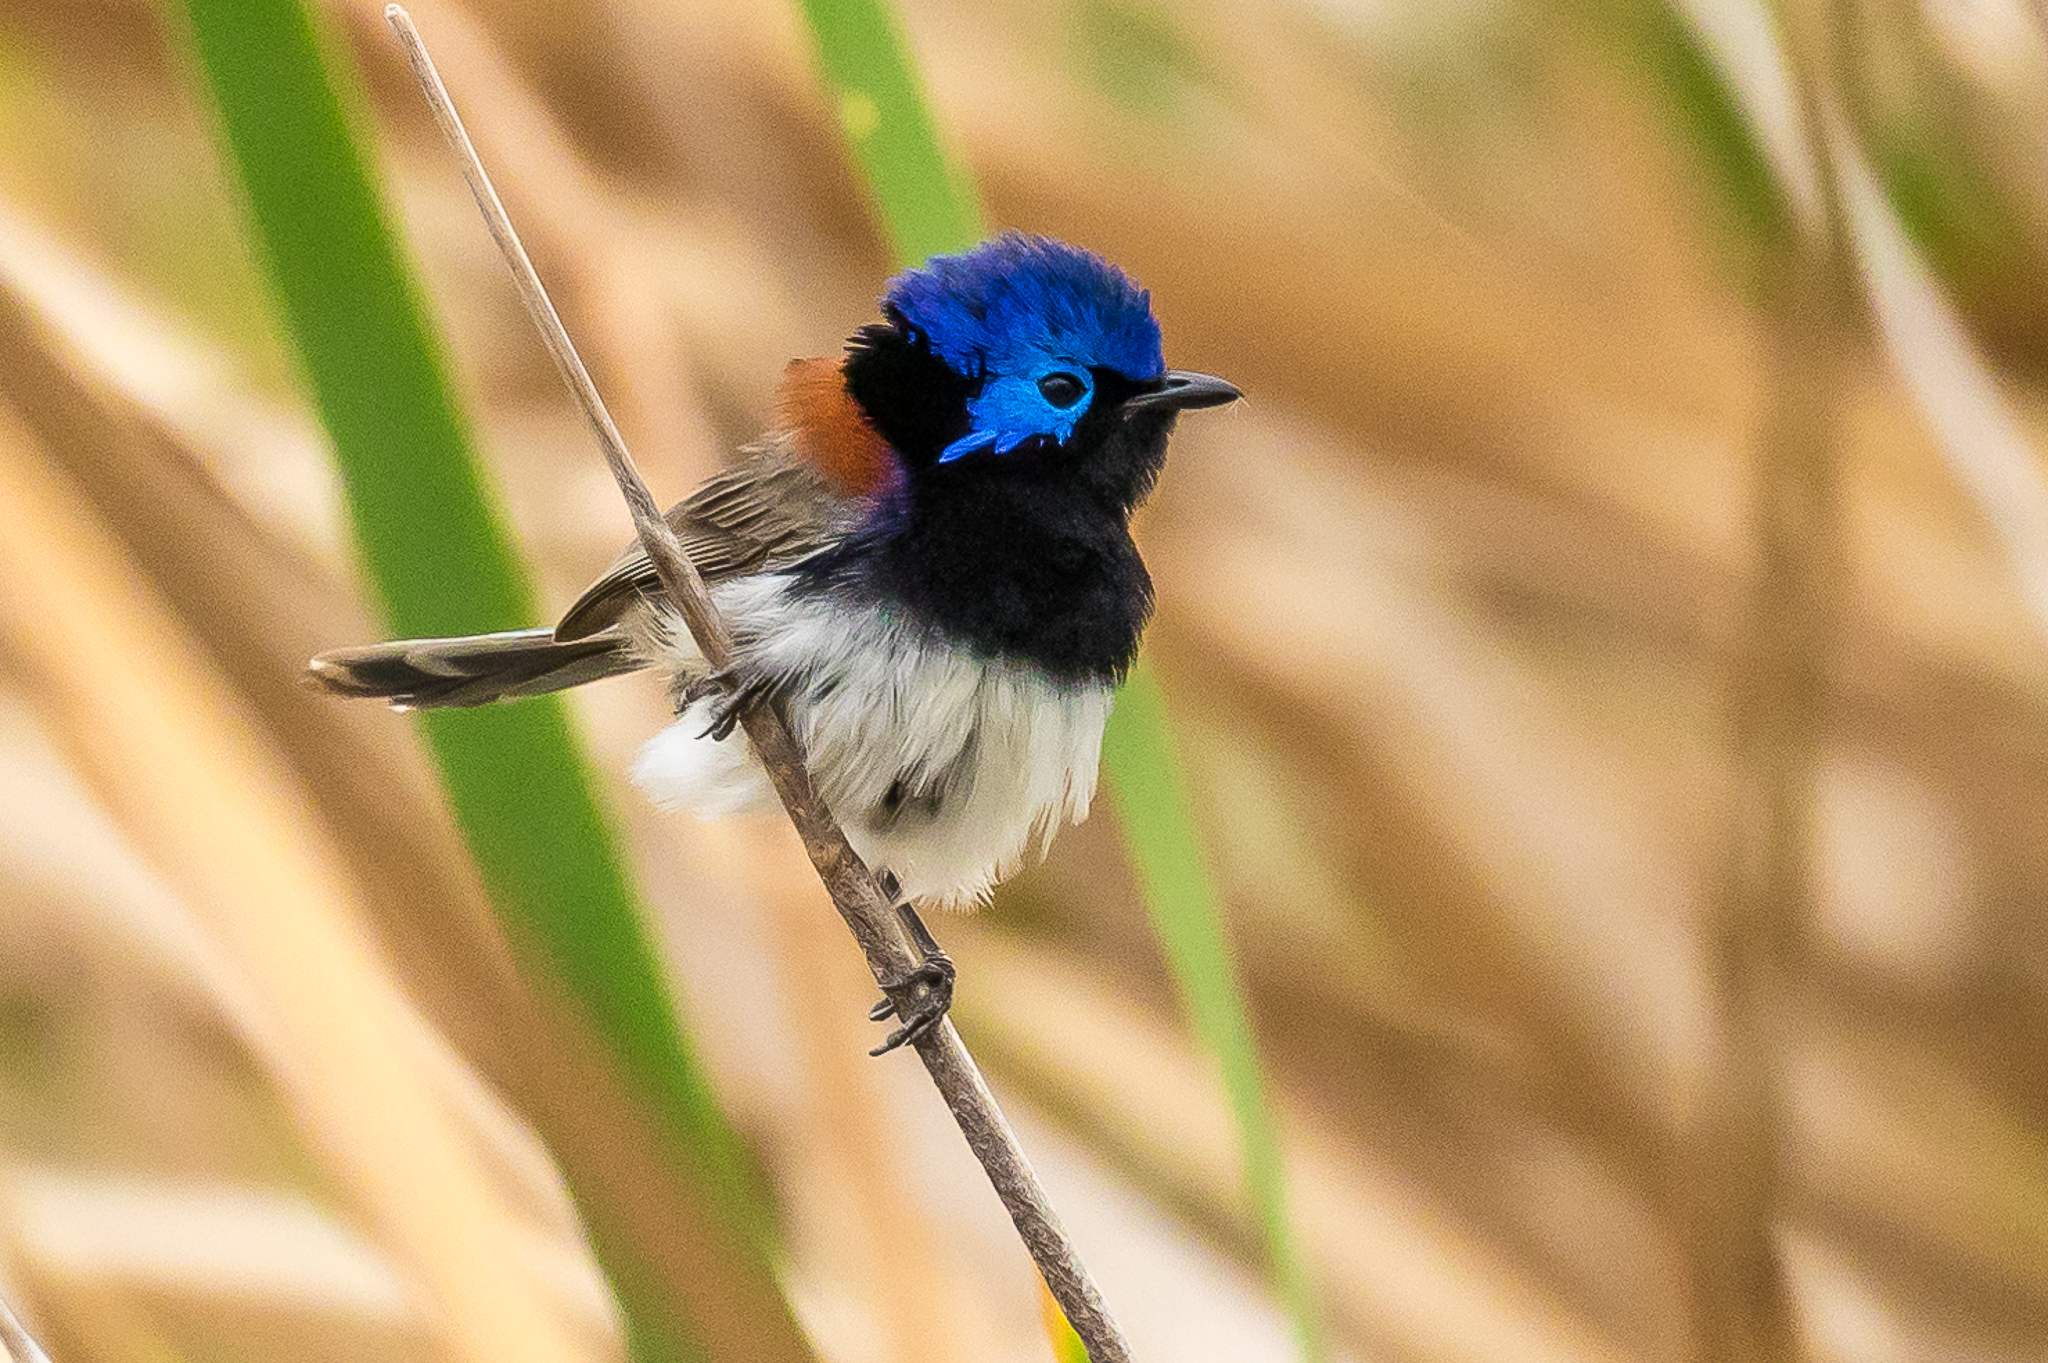 The Variegated Fairy-wren lives across most of Australia. They move through the base of shrubs and grasses looking for insects.